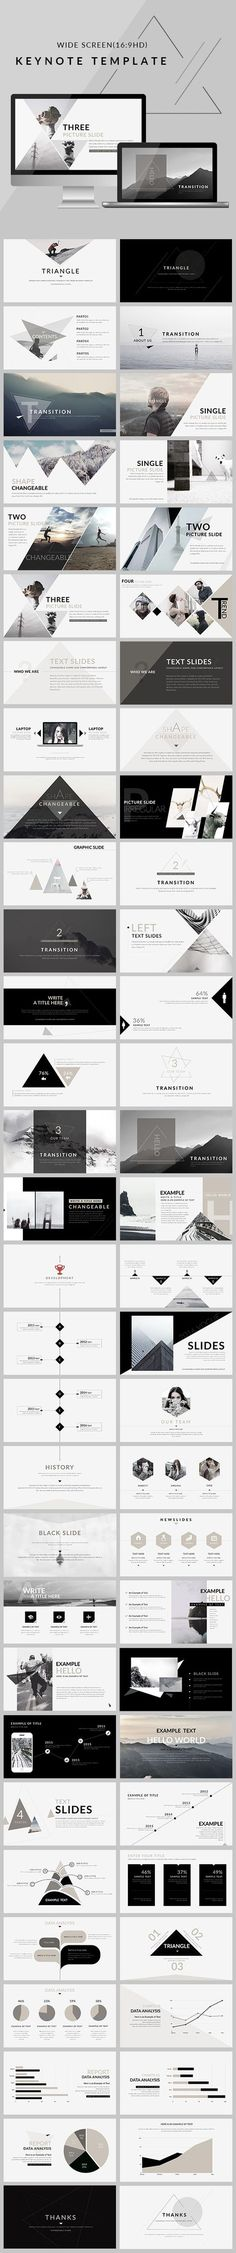 Triangle - Clean trend Keynote Template - Keynote Creative Presentation Template by Ppt Design, Layout Design, Visual Design, Logo Design, Design Agency, Keynote Design, Website Design Layout, Creative Design, Webdesign Inspiration